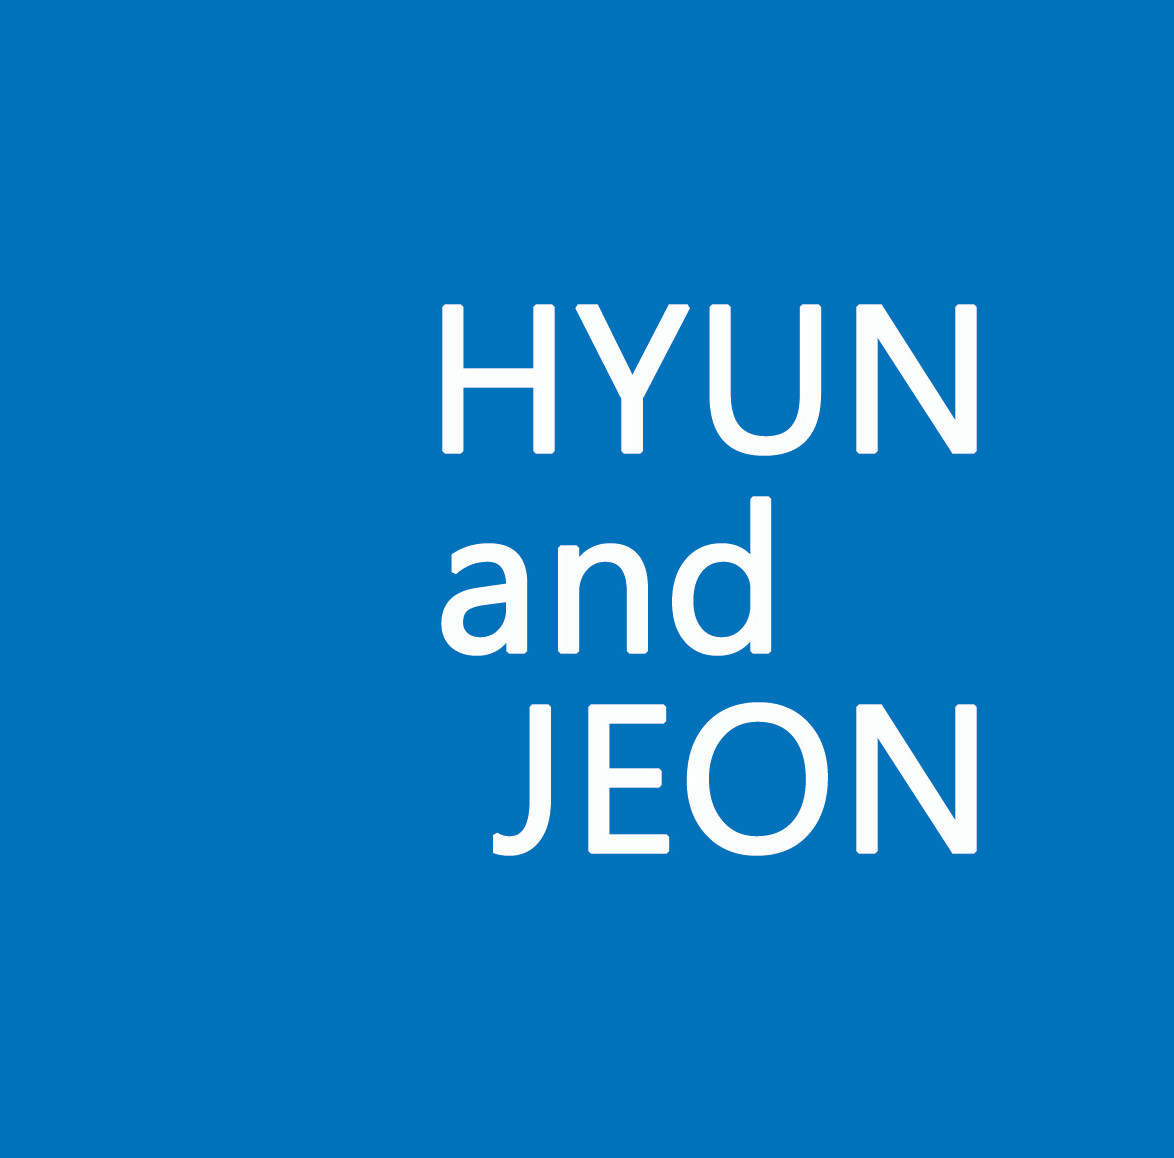 현앤전 건축사 사무소(HYUN AND JEON ARCHITECTURAL OFFICE )